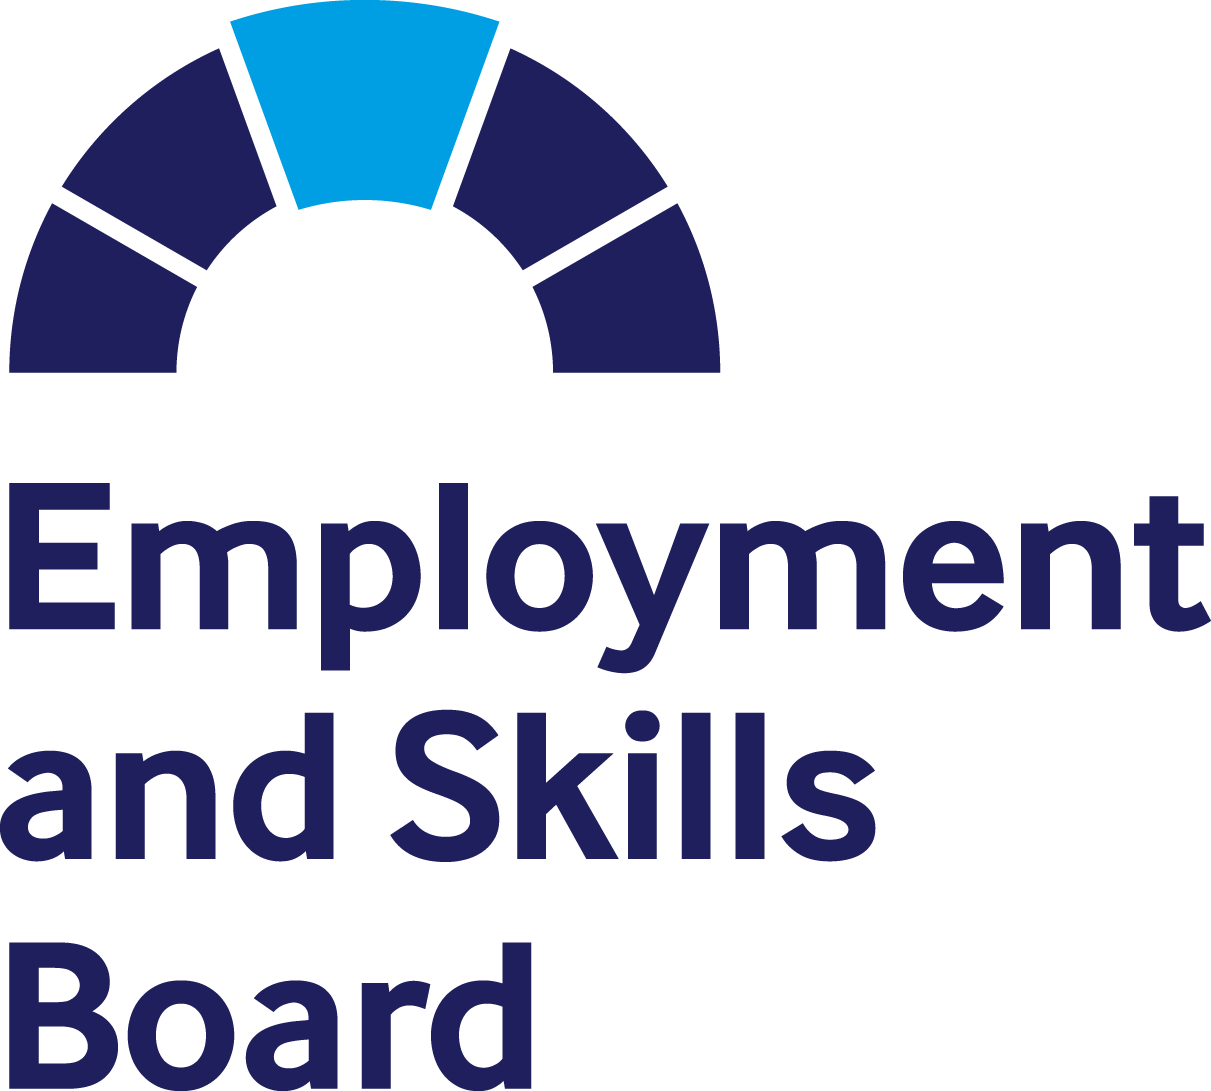 Employment and Skills Board logo